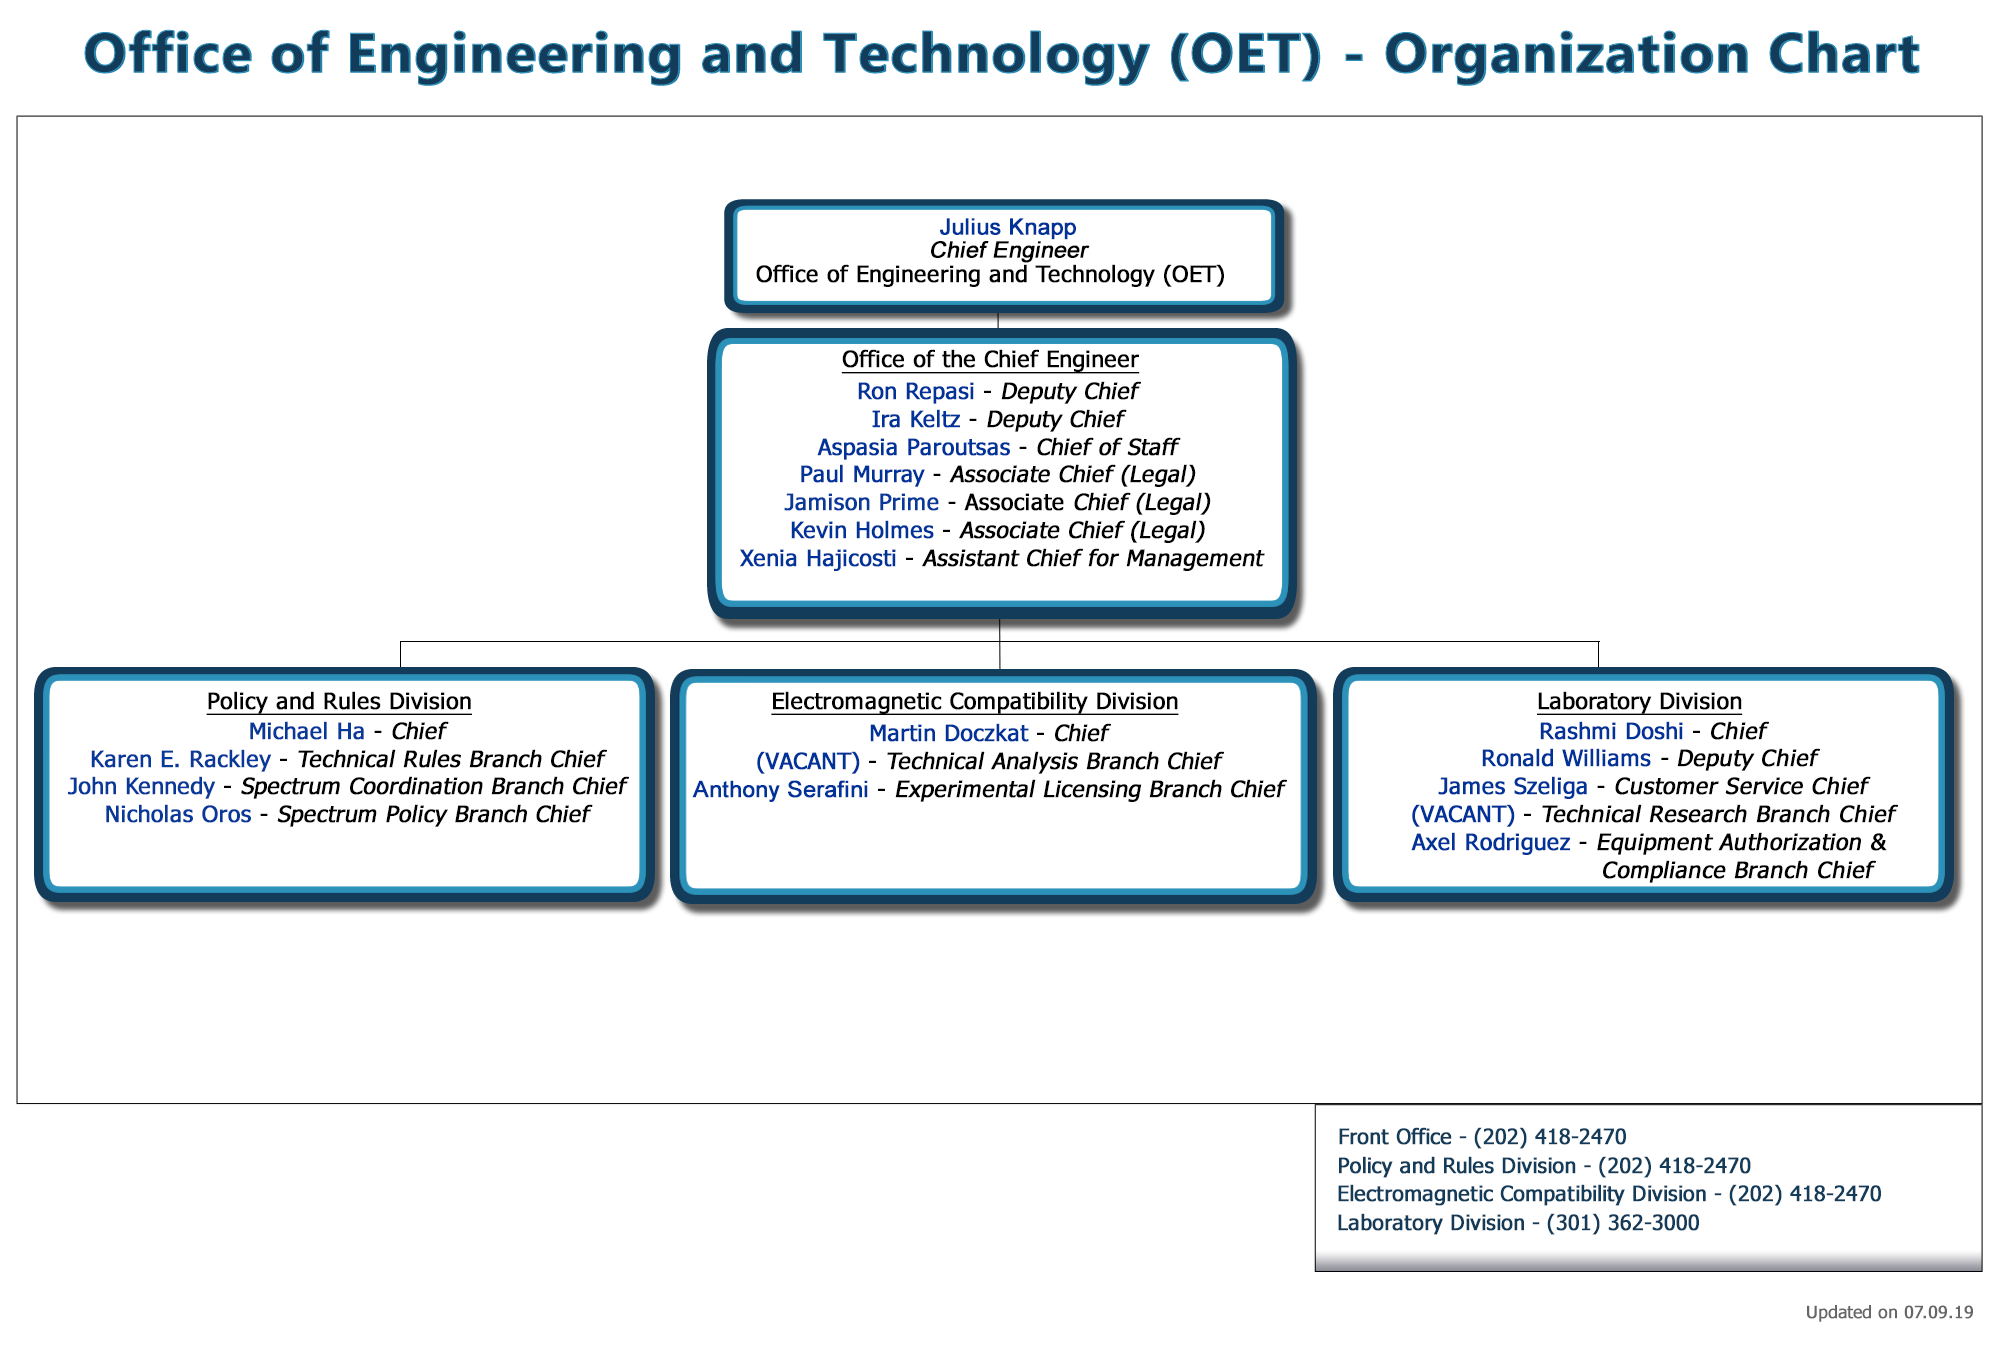 Office of Engineering and Technology (OET) - Organization Chart